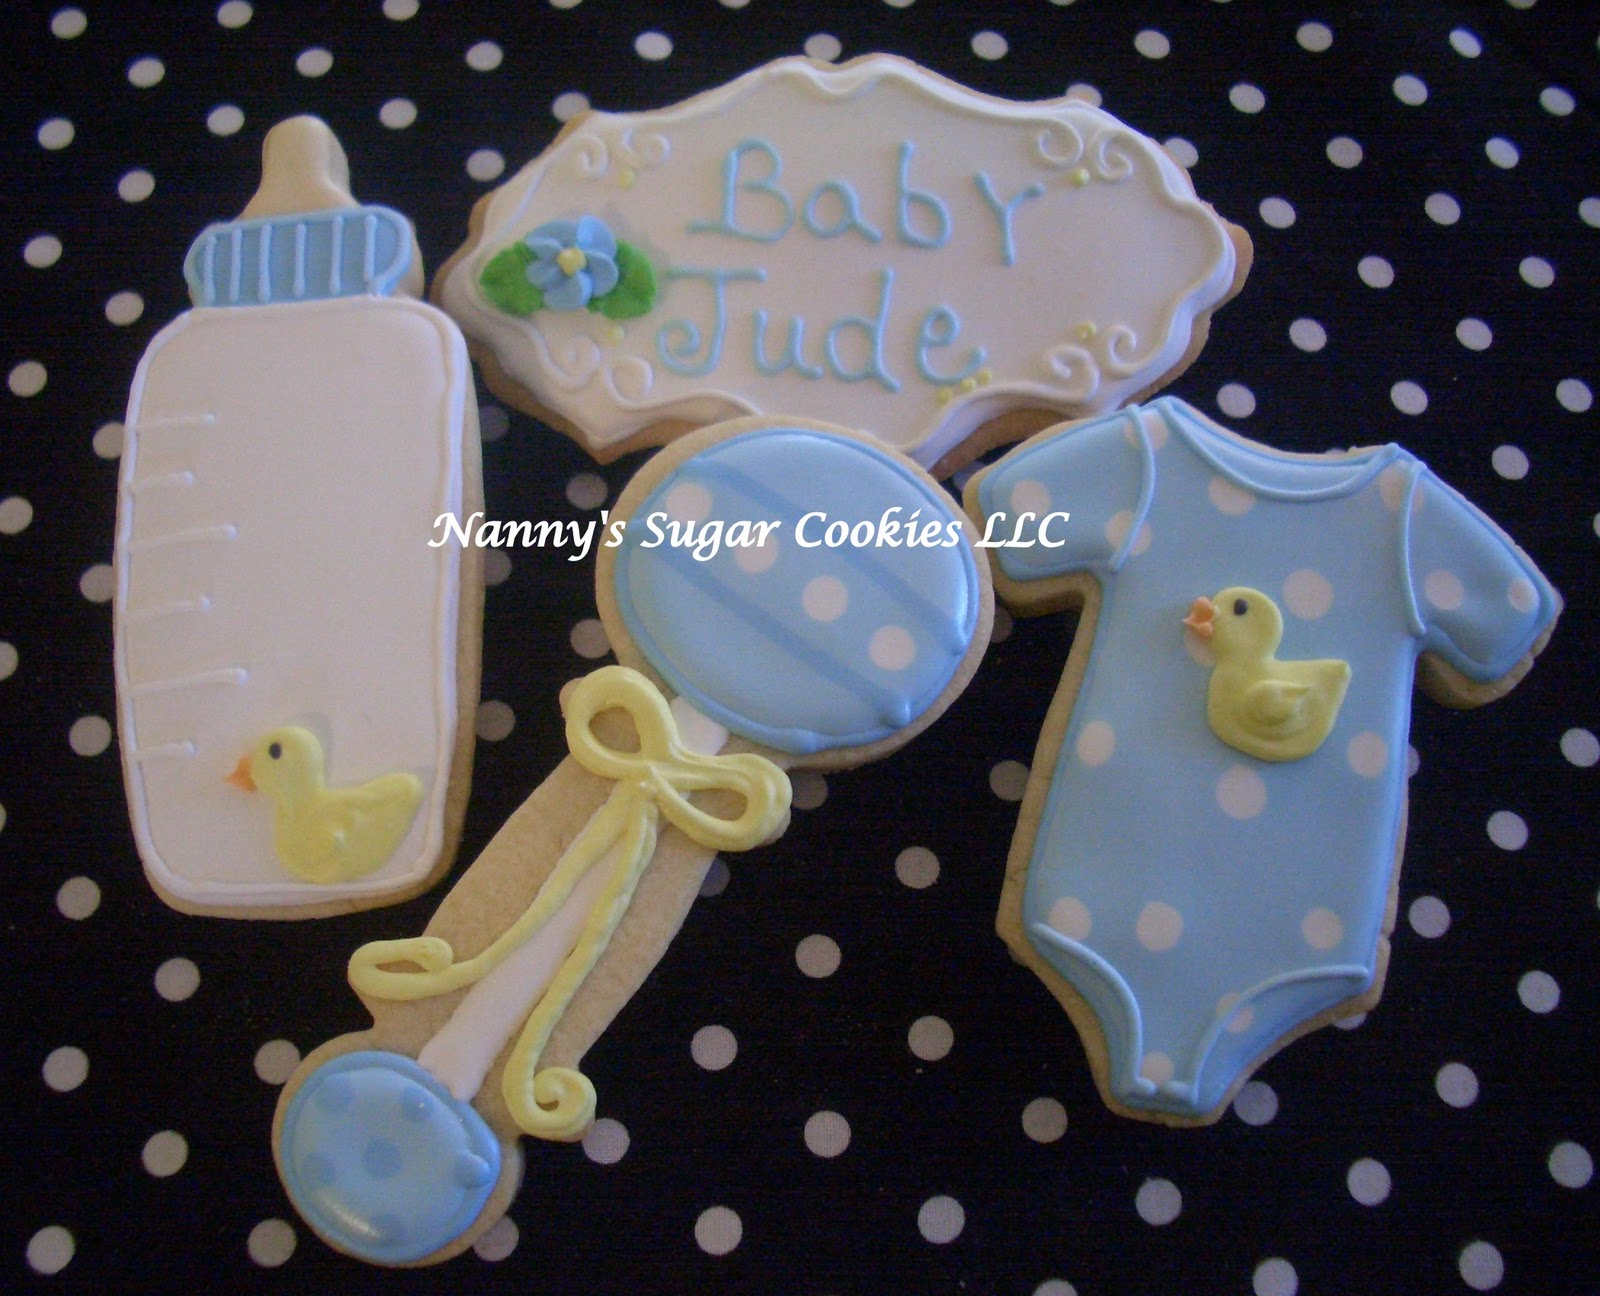 Baby Shower Cookie Images ~ Nanny s sugar cookies llc baby shower cookies